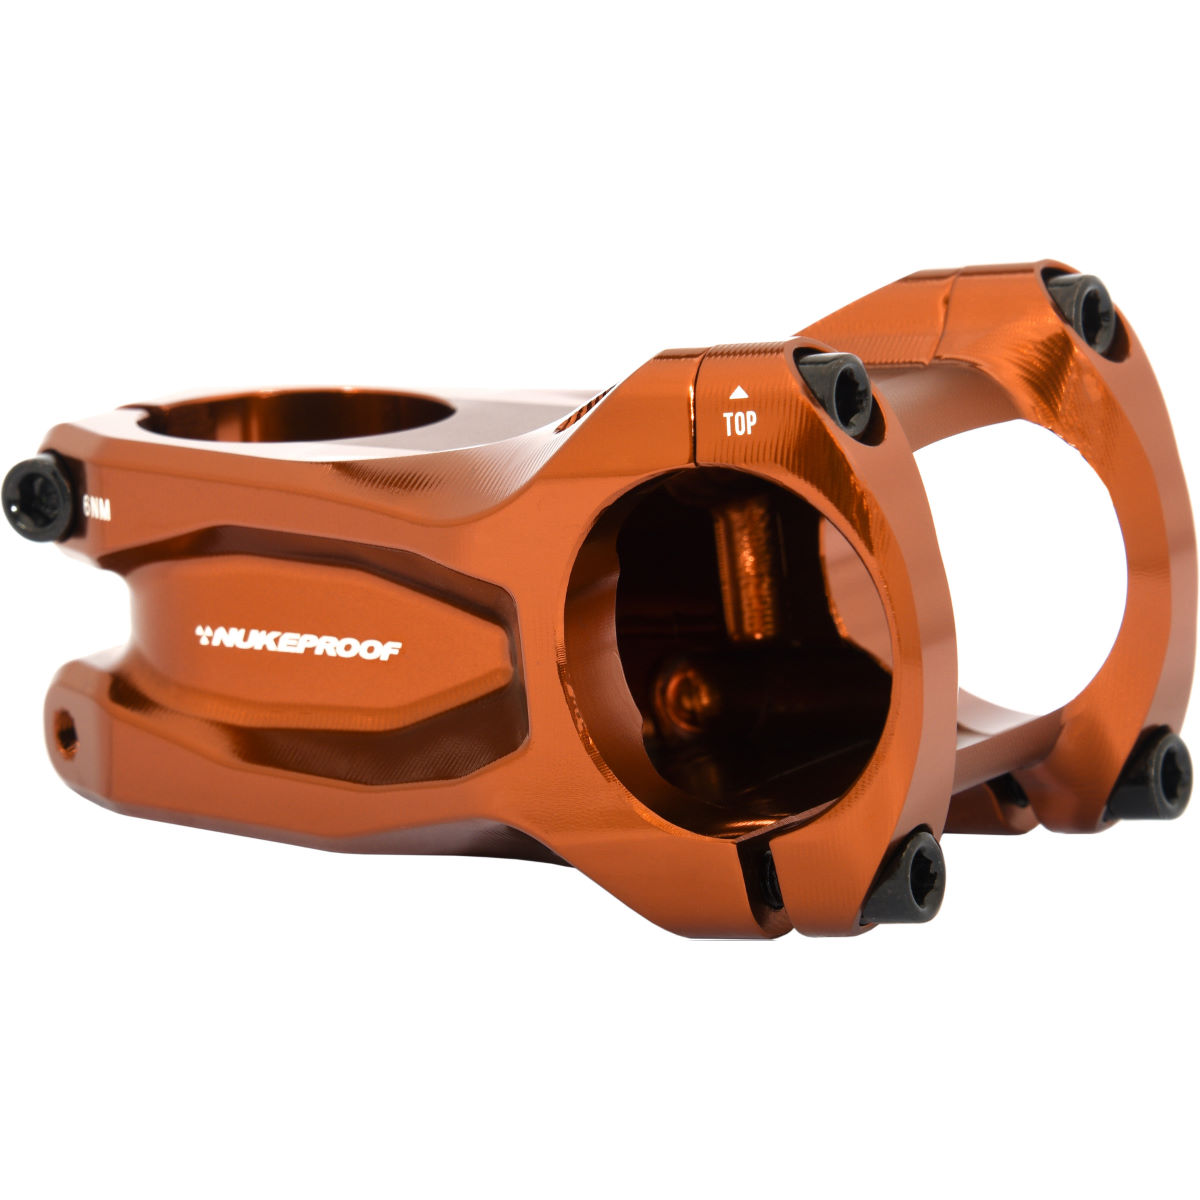 Potence Nukeproof Horizon - 31.8mm x 60mm Copper Potences